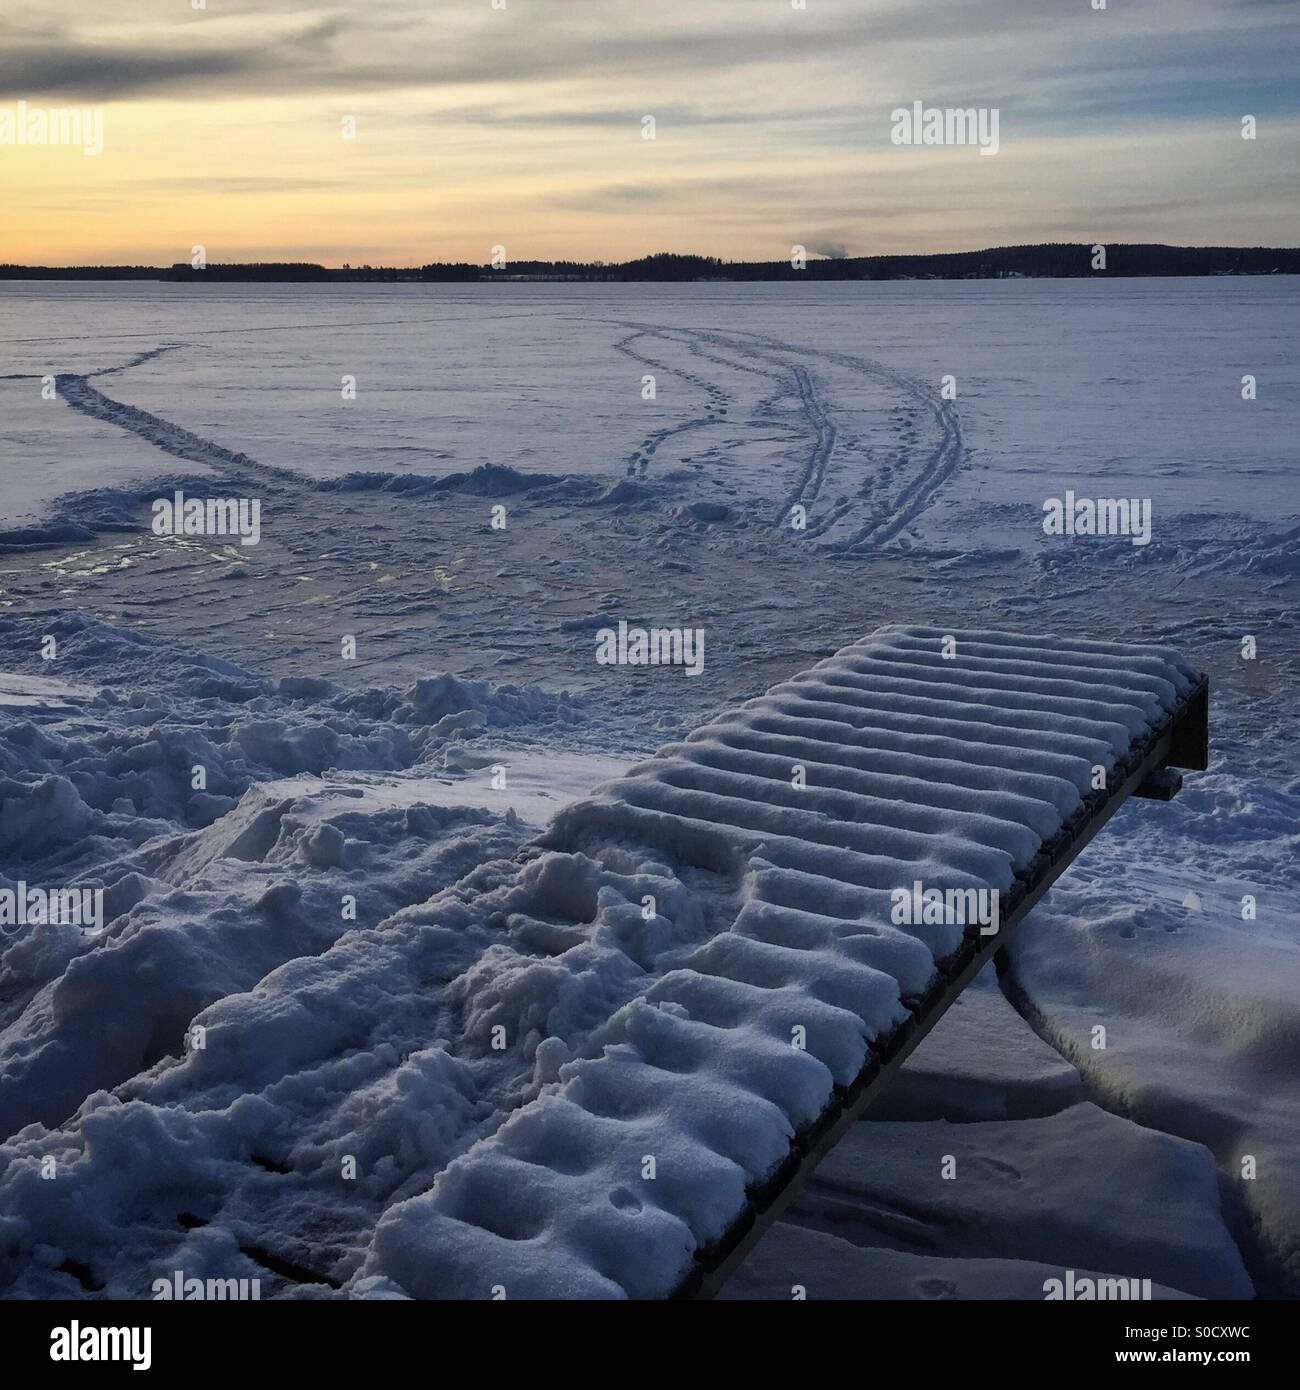 A home made ice rink, a pier and ski tracks at sunset at an idyllic Arctic frozen lake in winter in Scandinavia - Stock Image